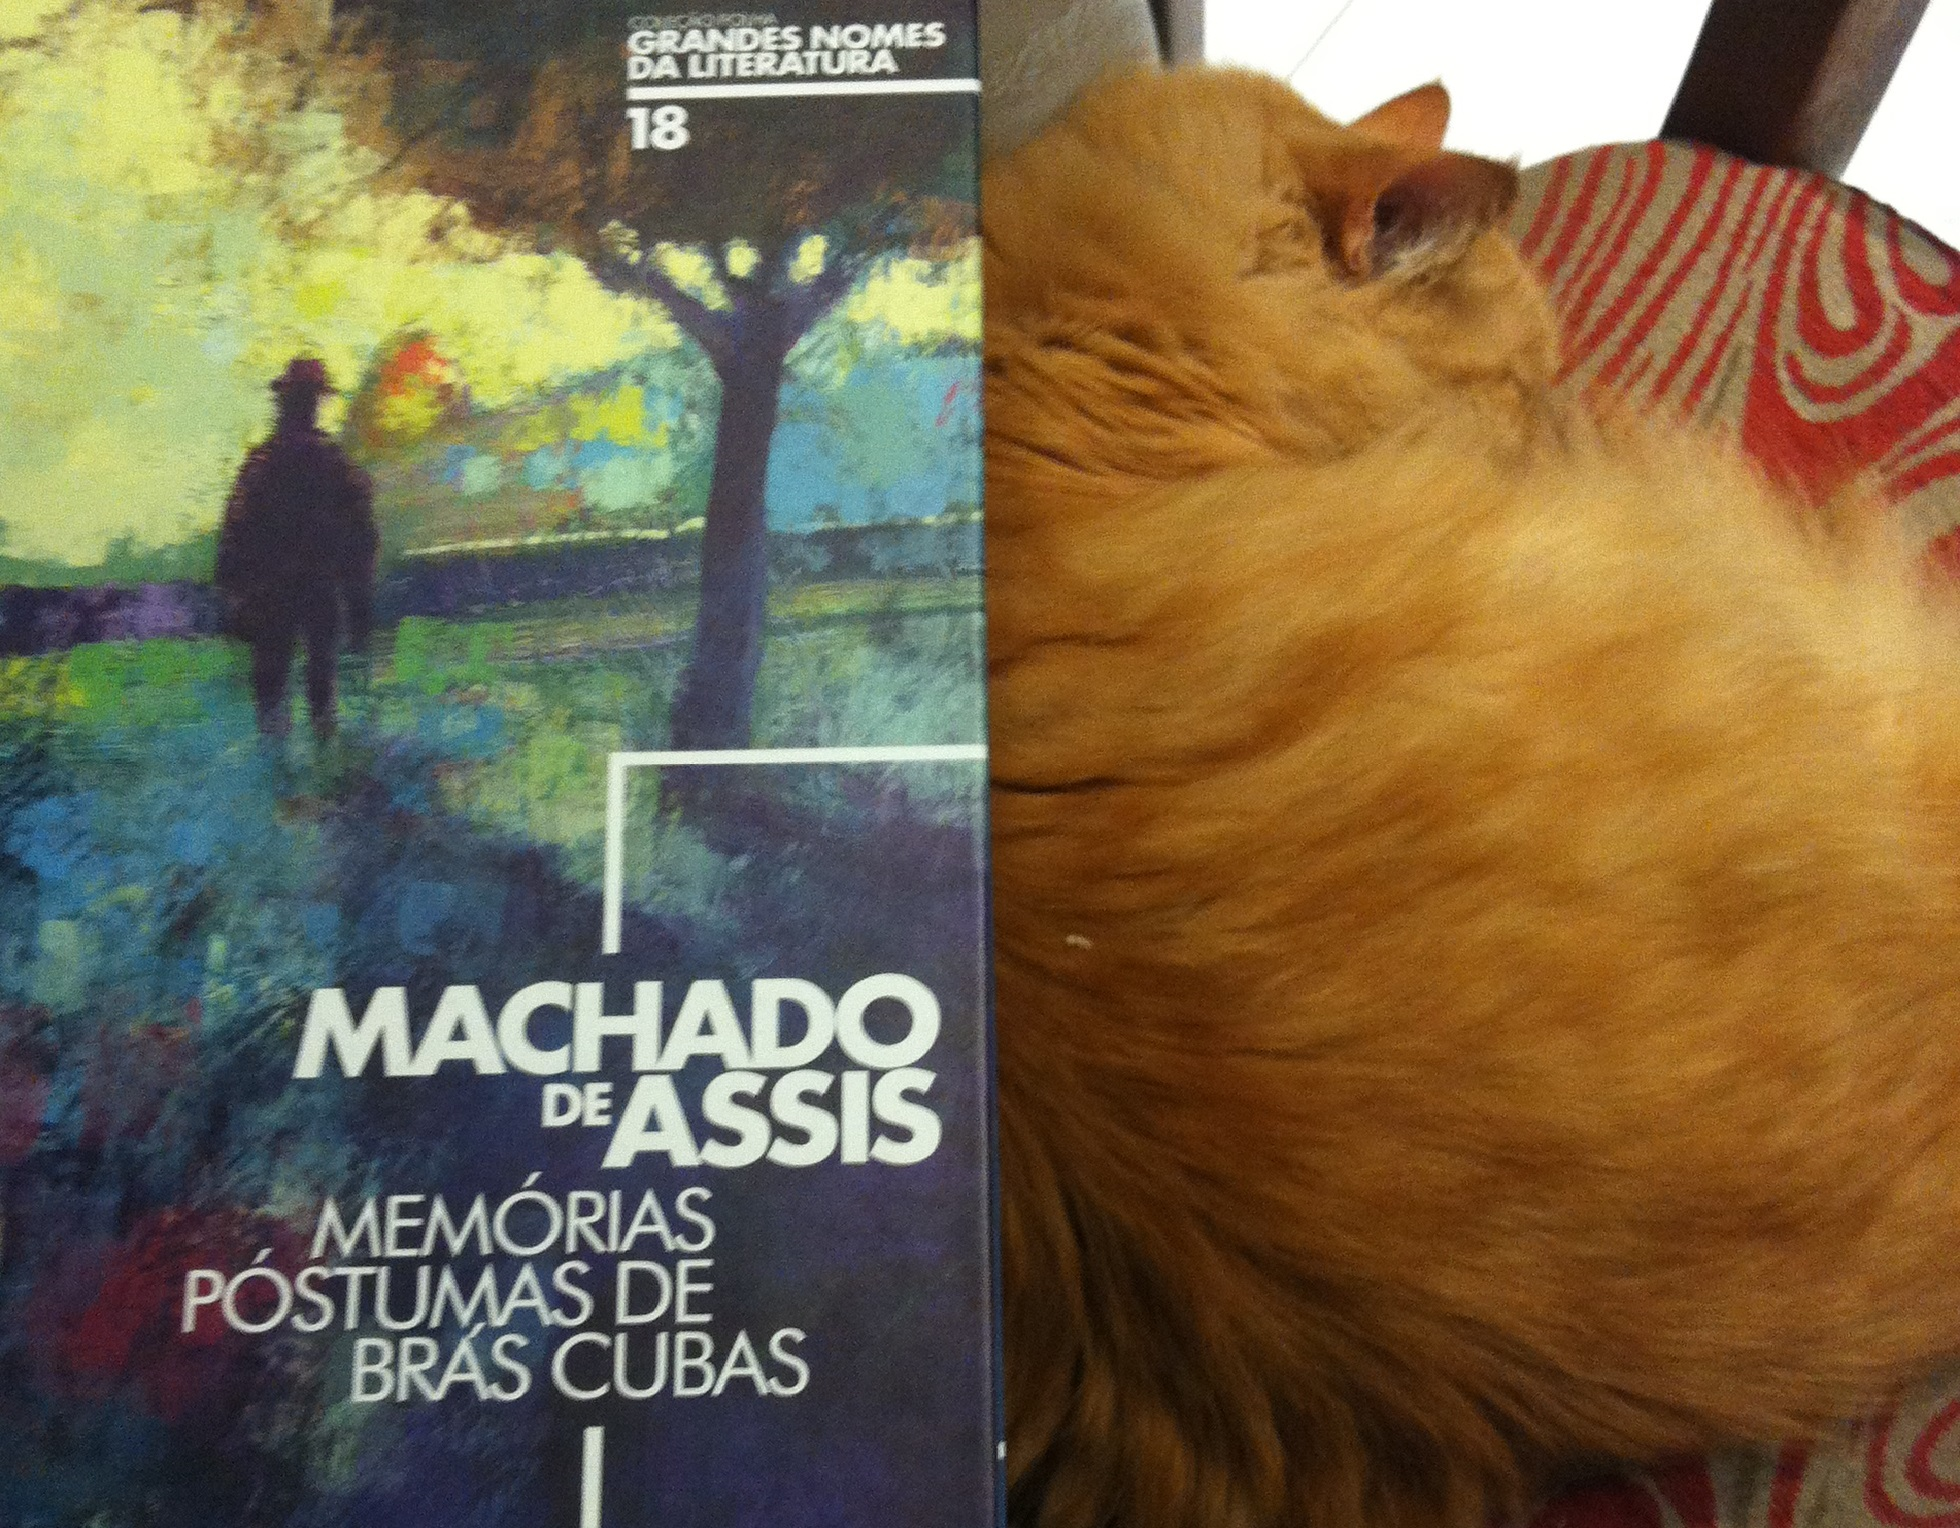 Machado de Assis, Woody Allen